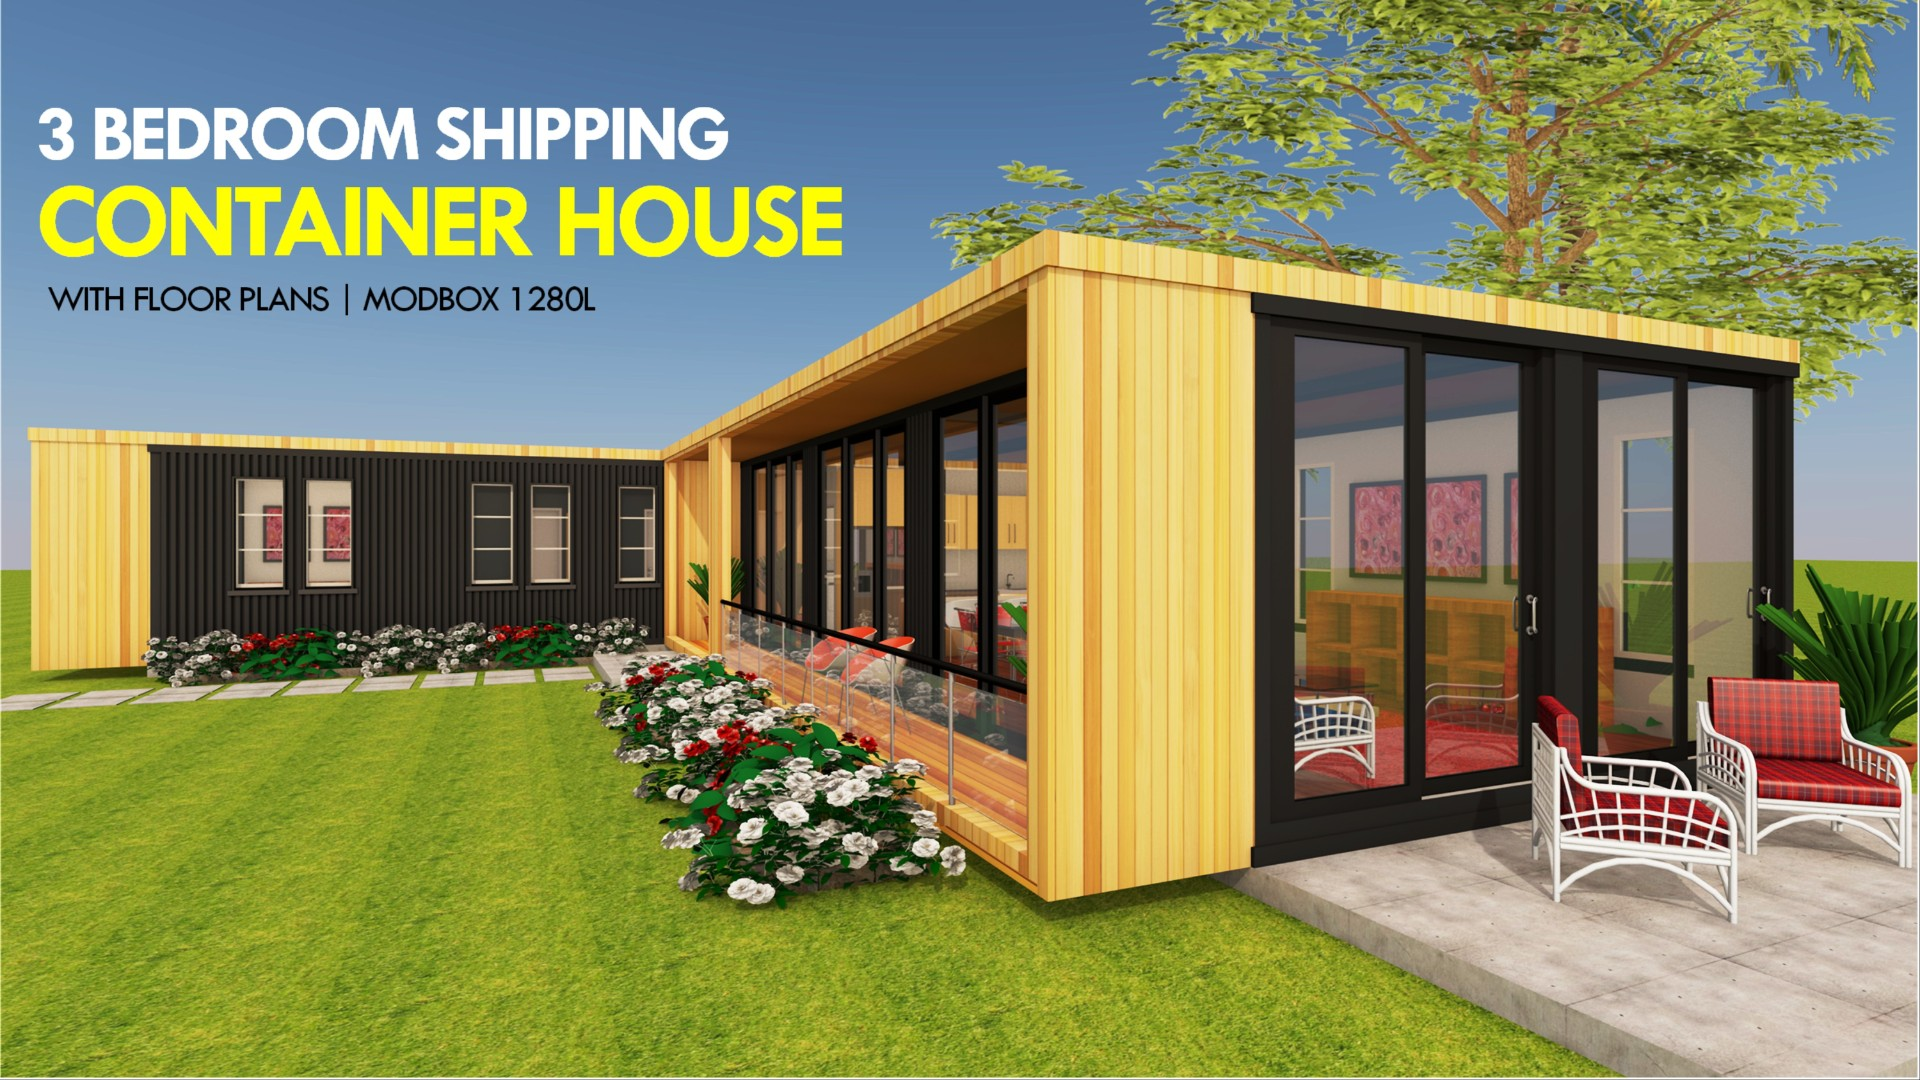 Modern Shipping Container Home modbox 1280l | id. s13201280l | 3 bed | 2 baths | 1280+sft.|